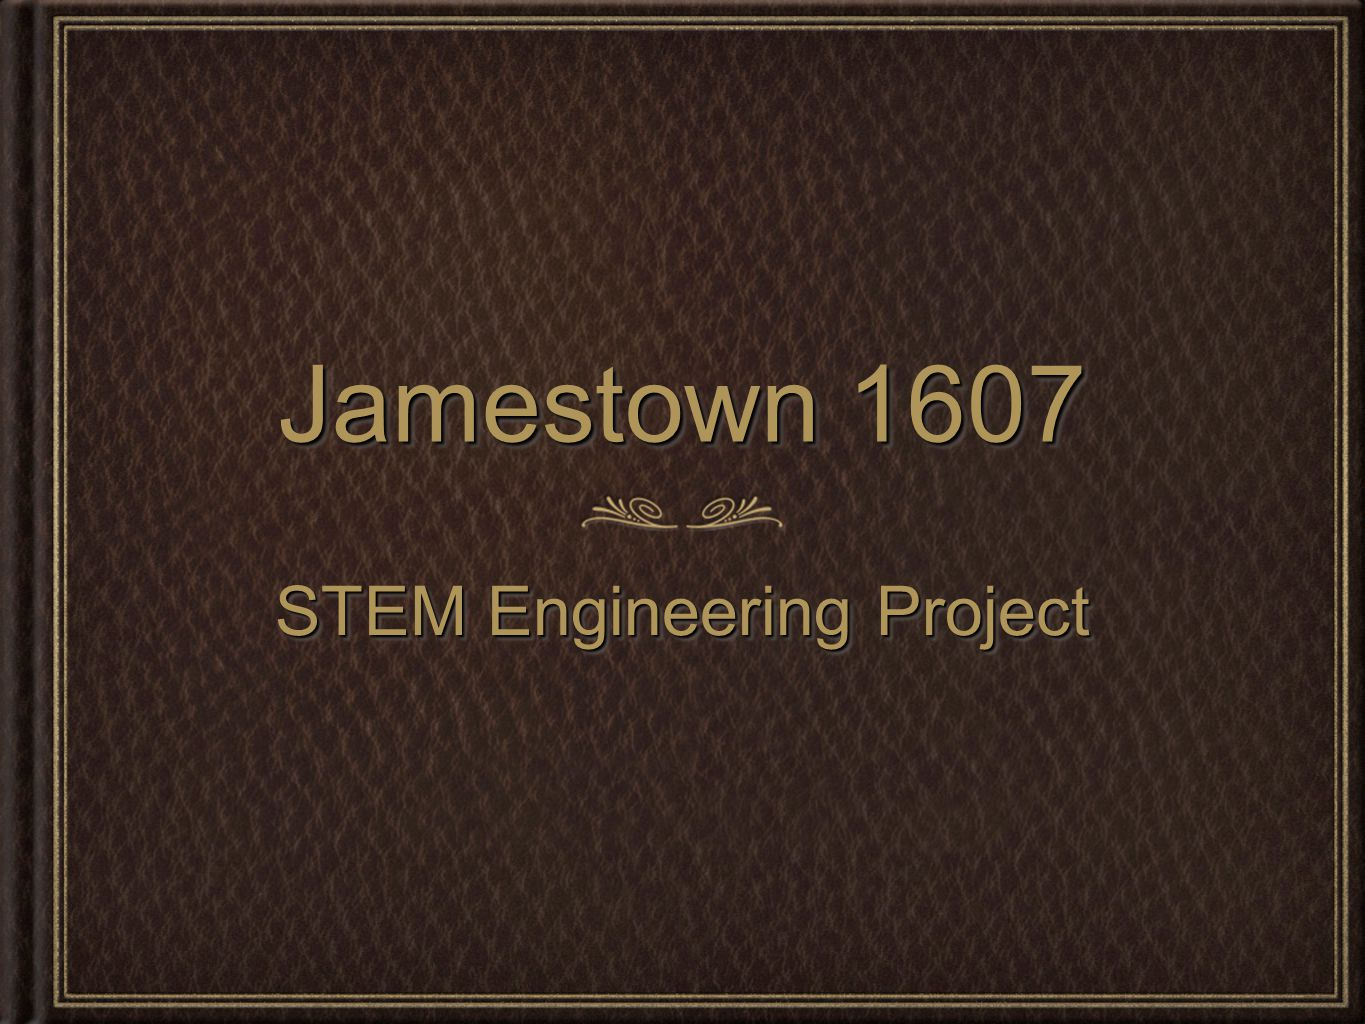 STEM Engineering Project